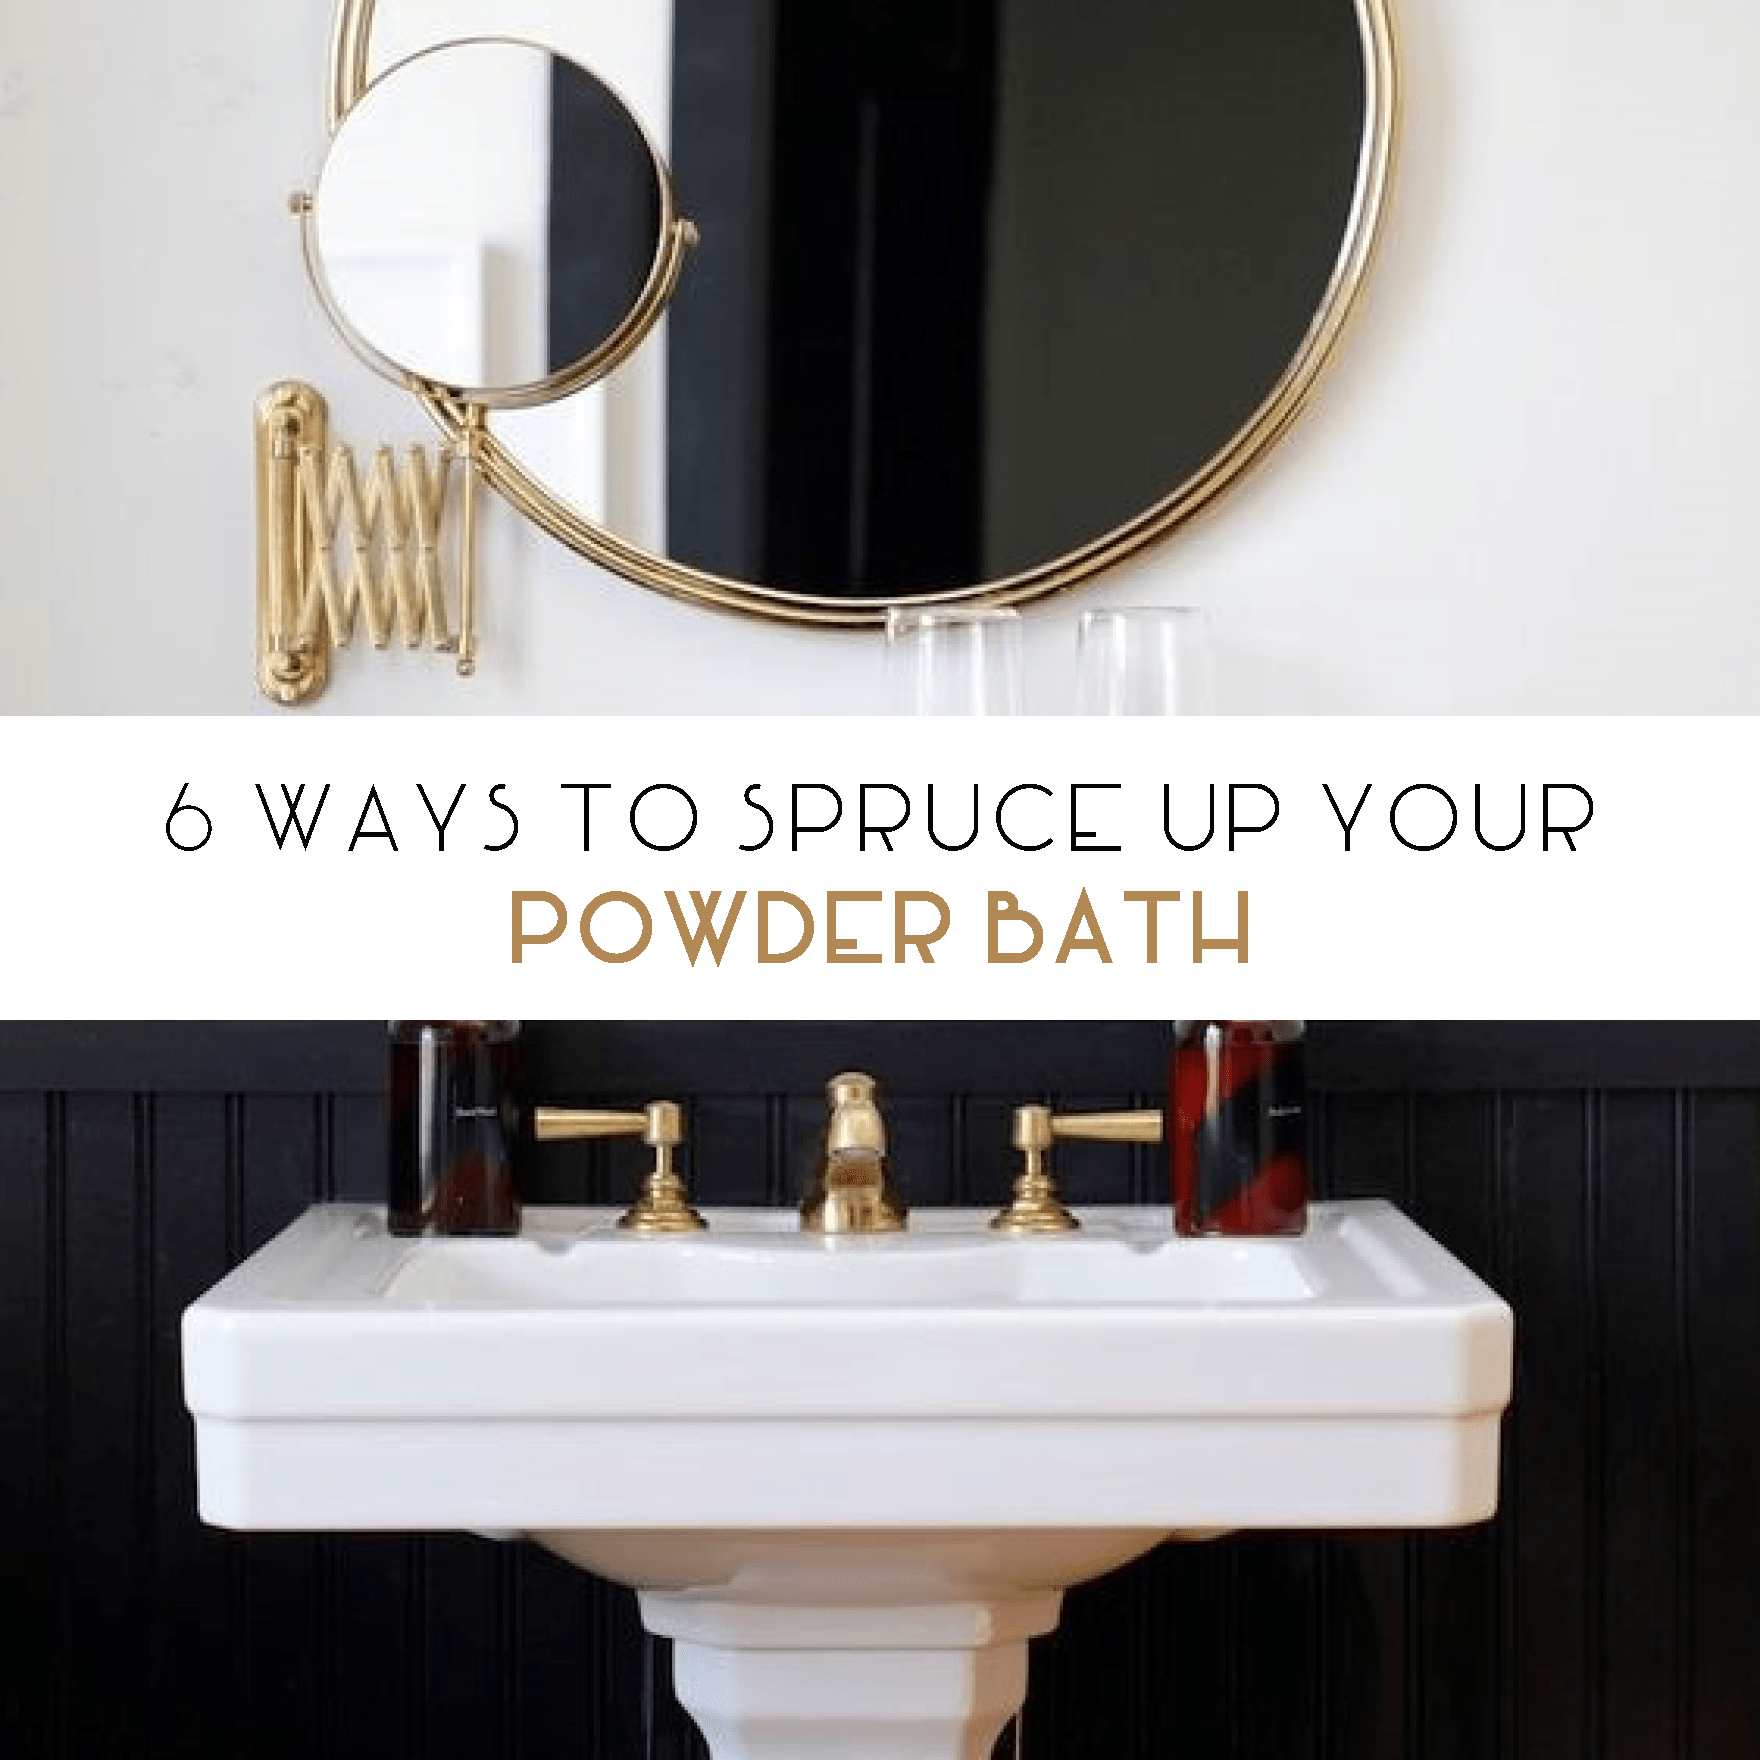 6 Ways to Spruce Up a Powder Bath